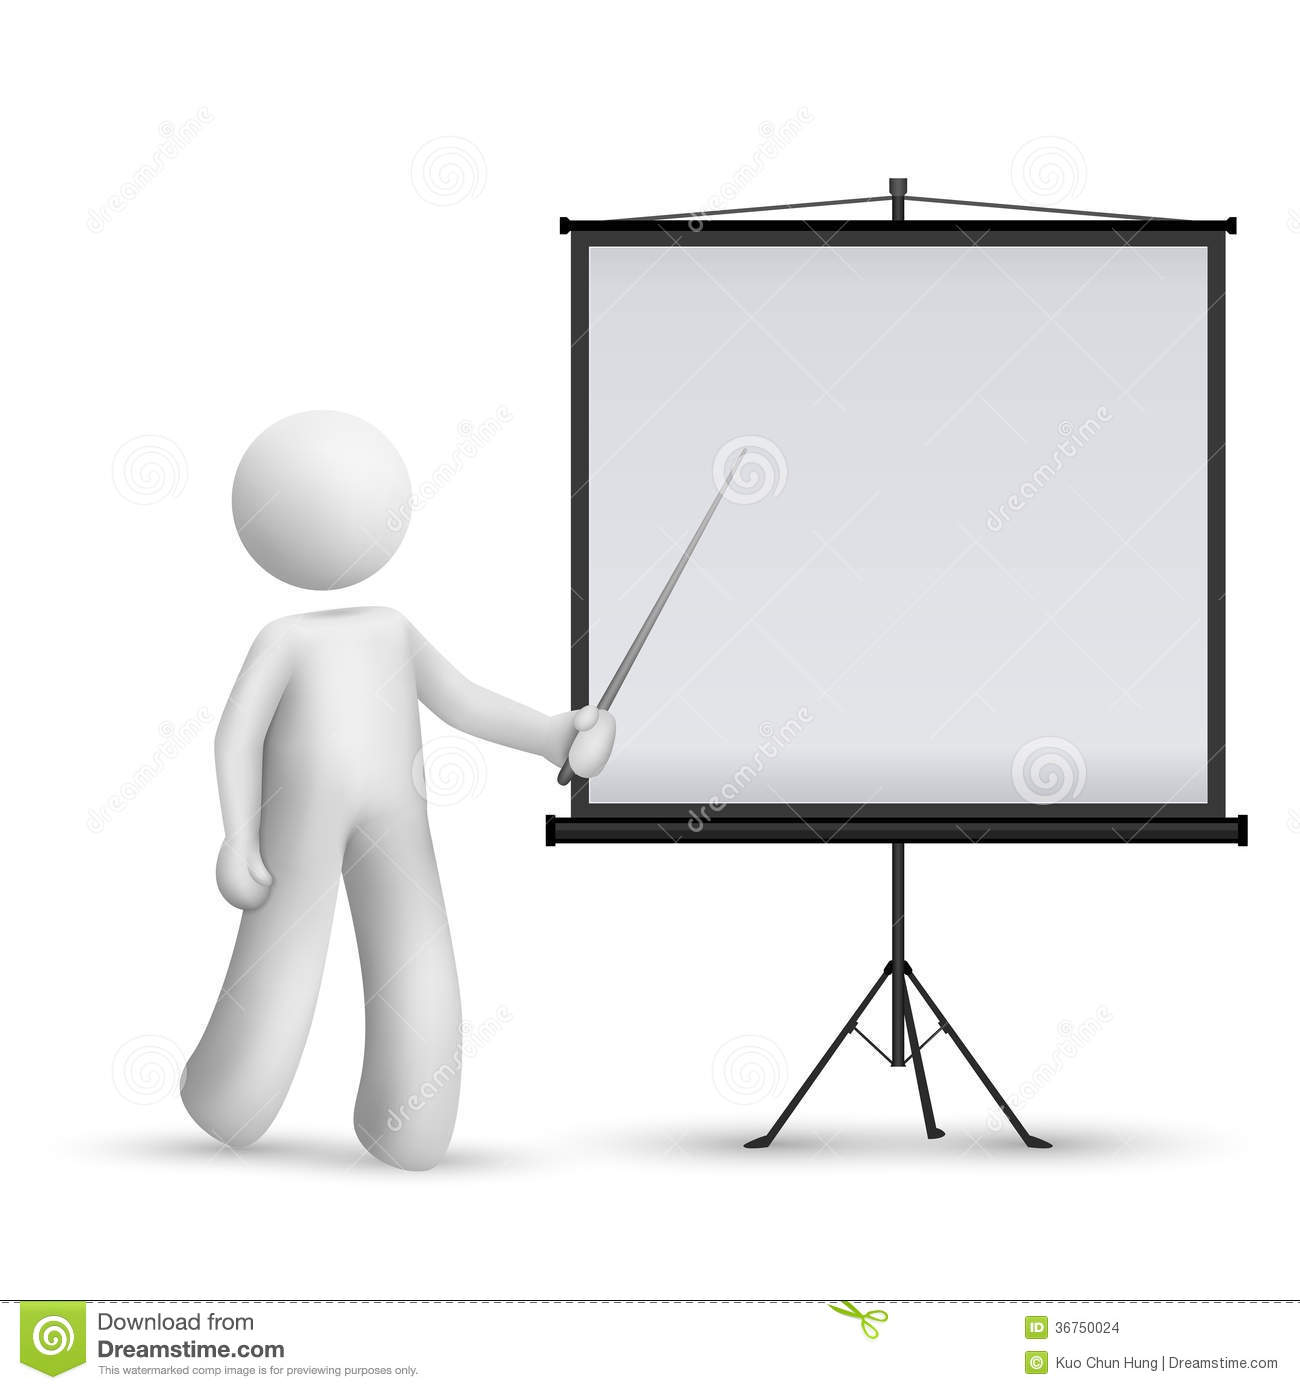 Presentation introduction clipart 1 » Clipart Station.